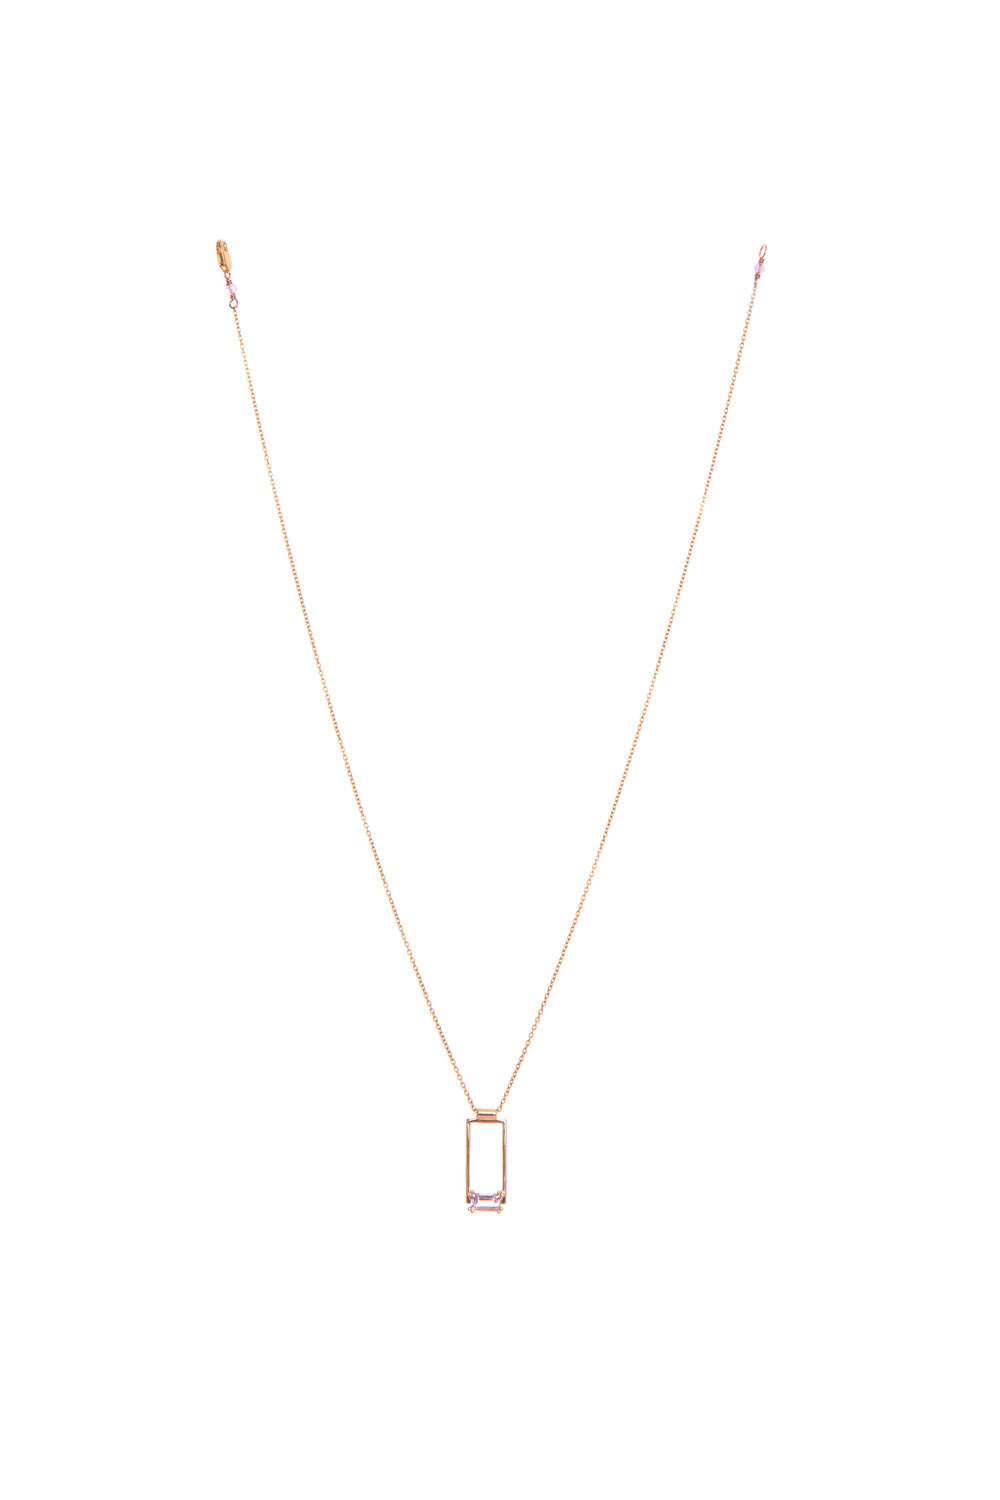 Hailey Gerrits Corsica Necklace- Pink Amethyst